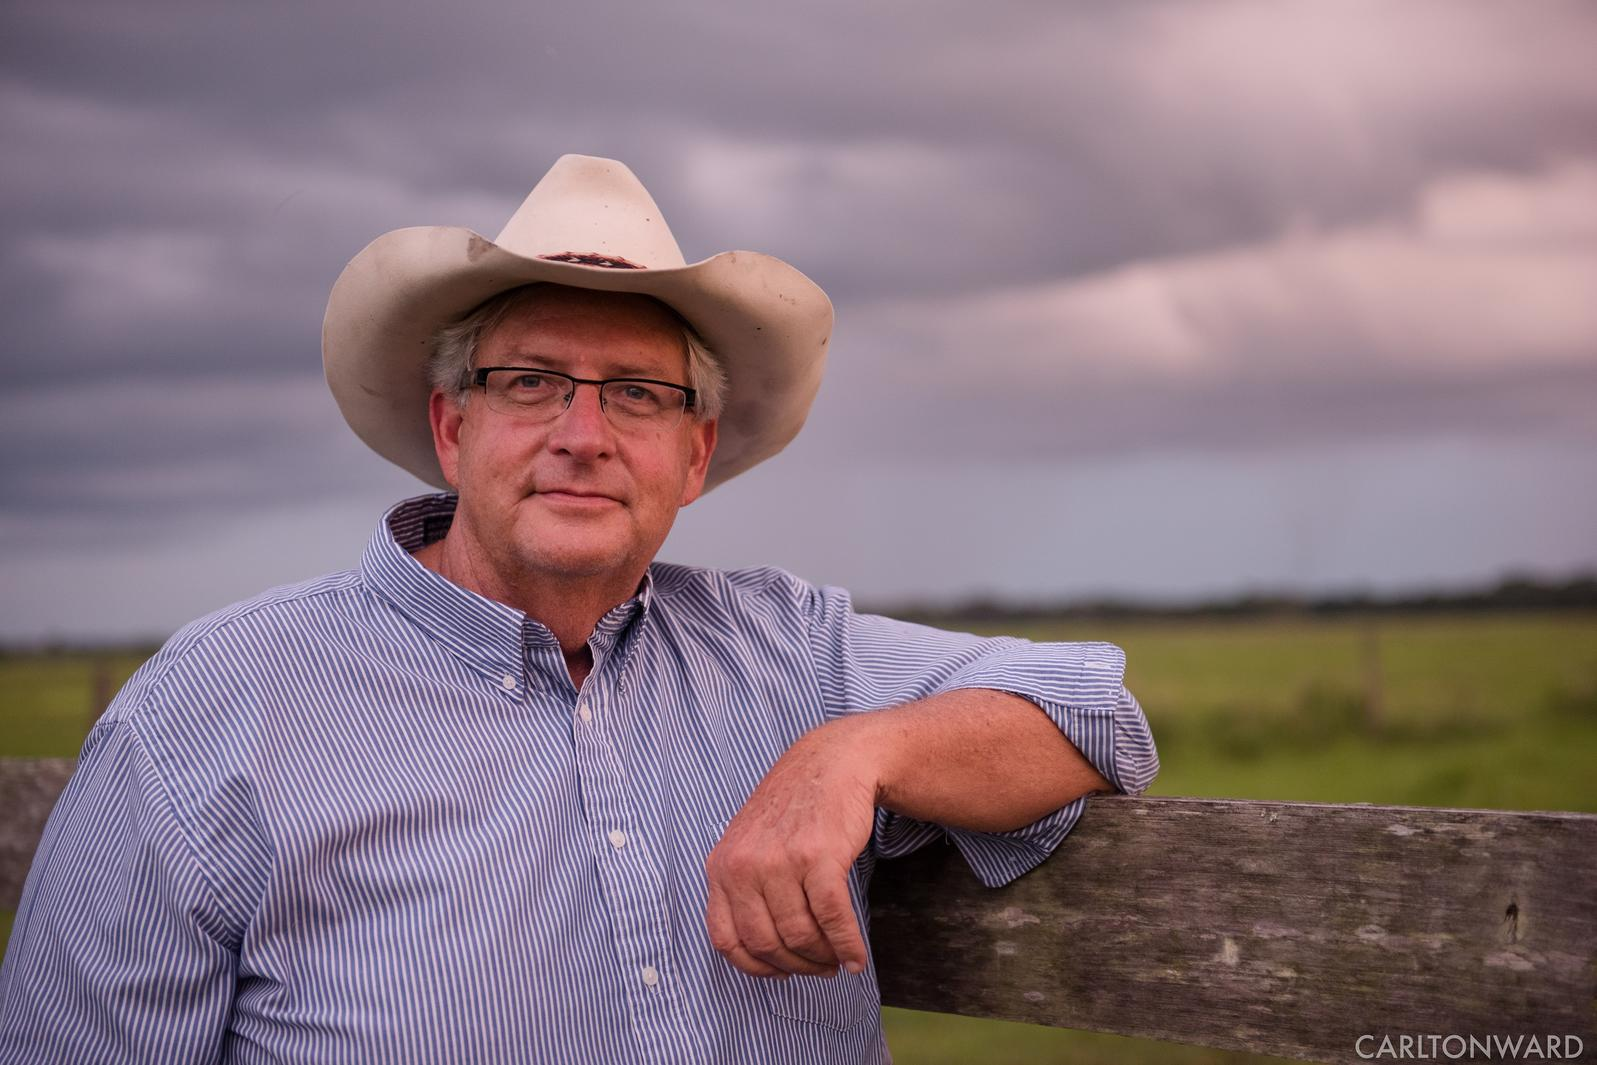 Rancher Jim Strickland